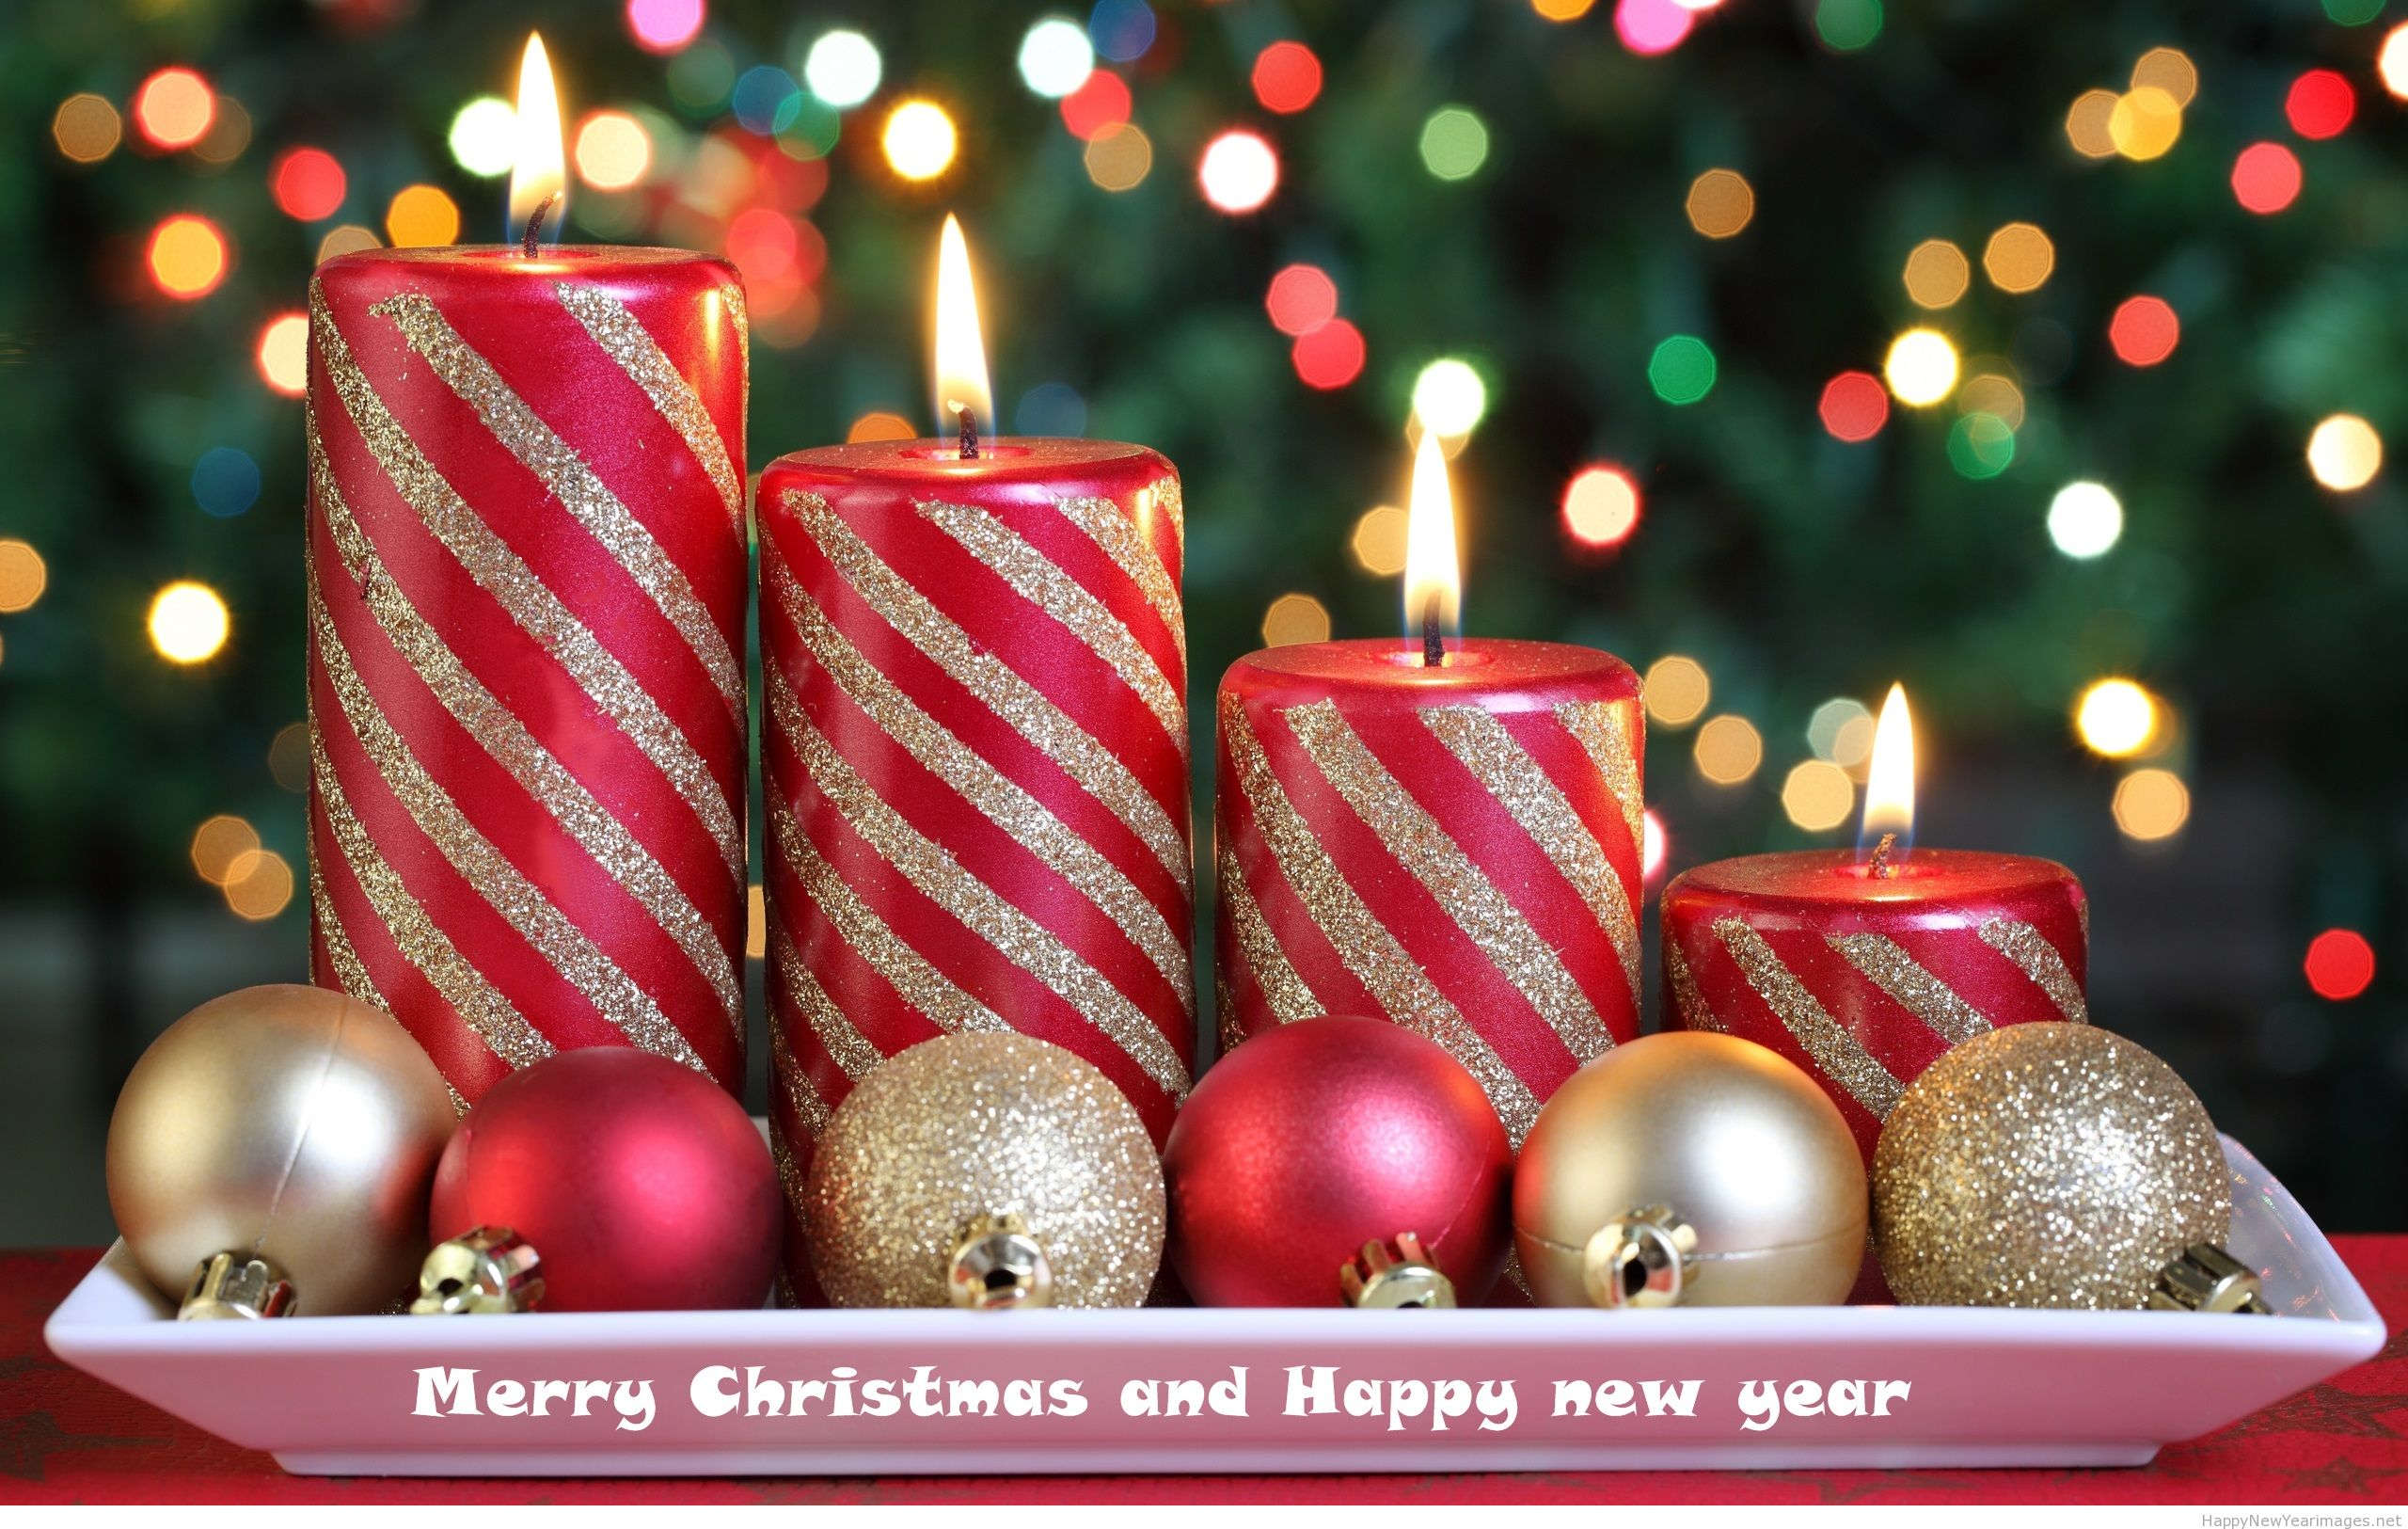 Merry-Christmas-and-happy-new-year-candle-wallpaper-2014-2015